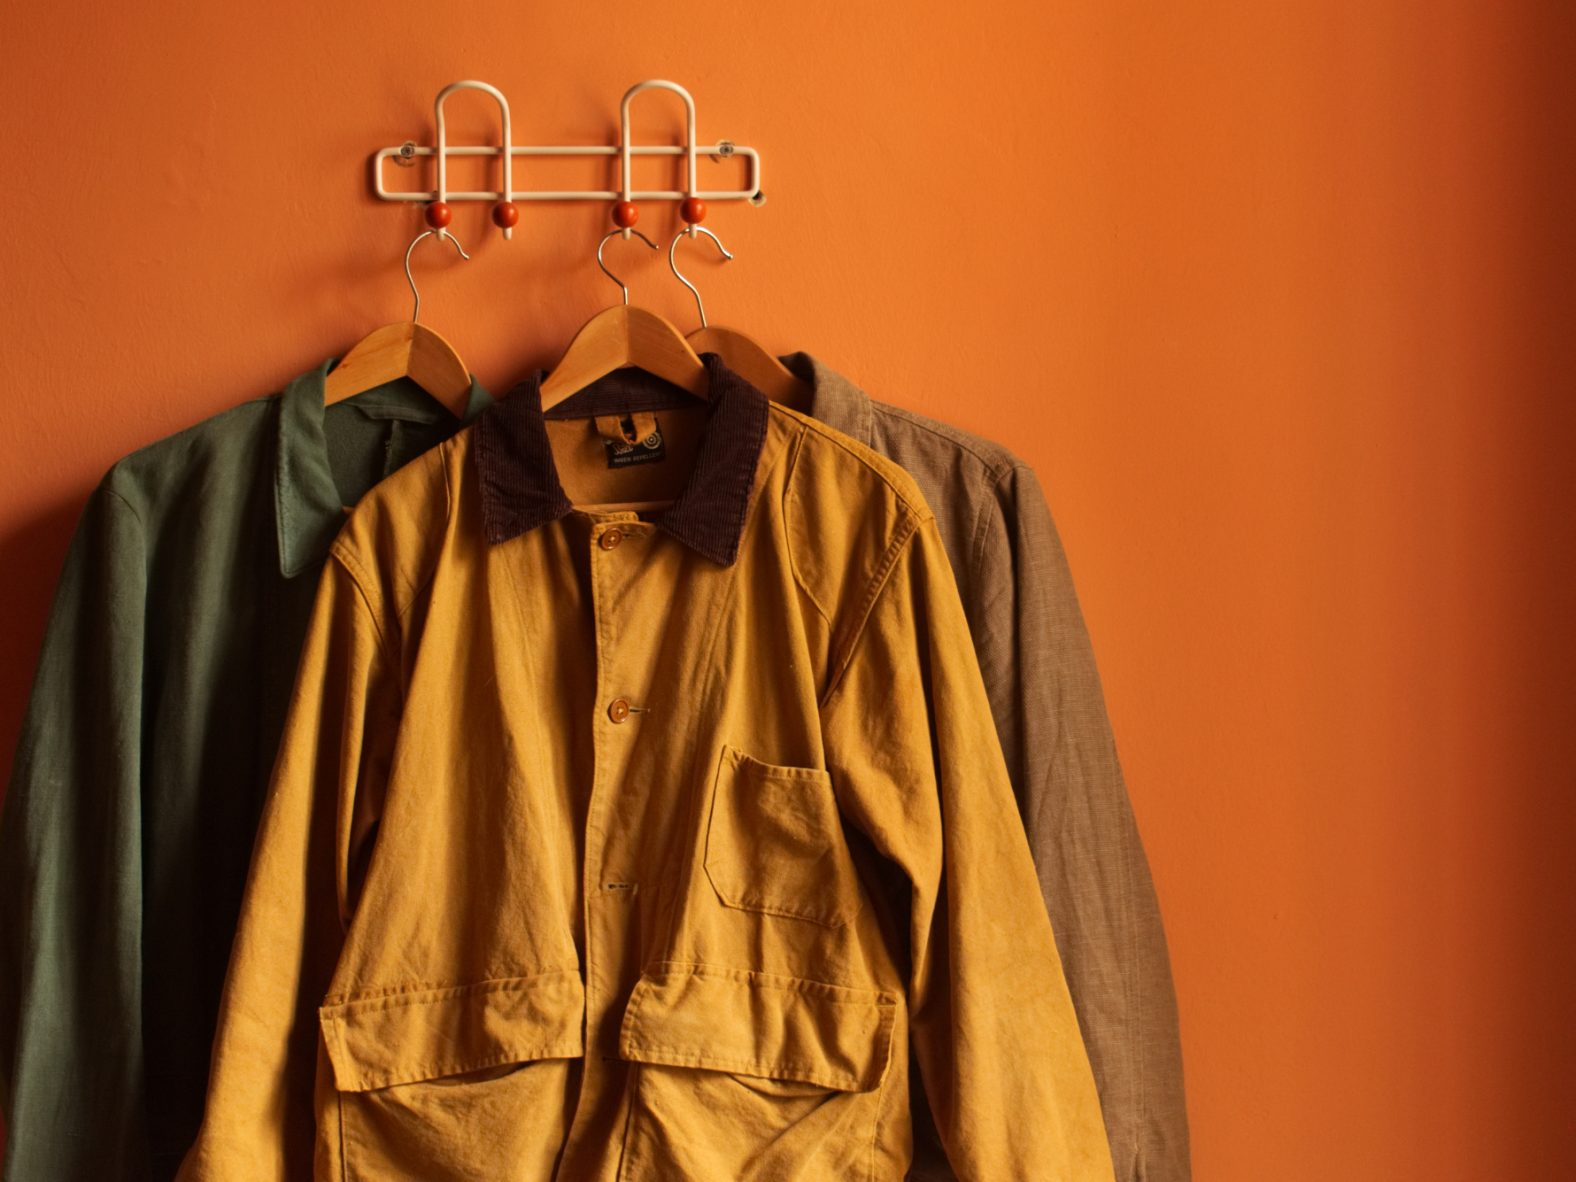 Is it more ethical to buy vintage clothing such as bleu du travail vintage French work jackets and L.L. Bean hunting jackets?